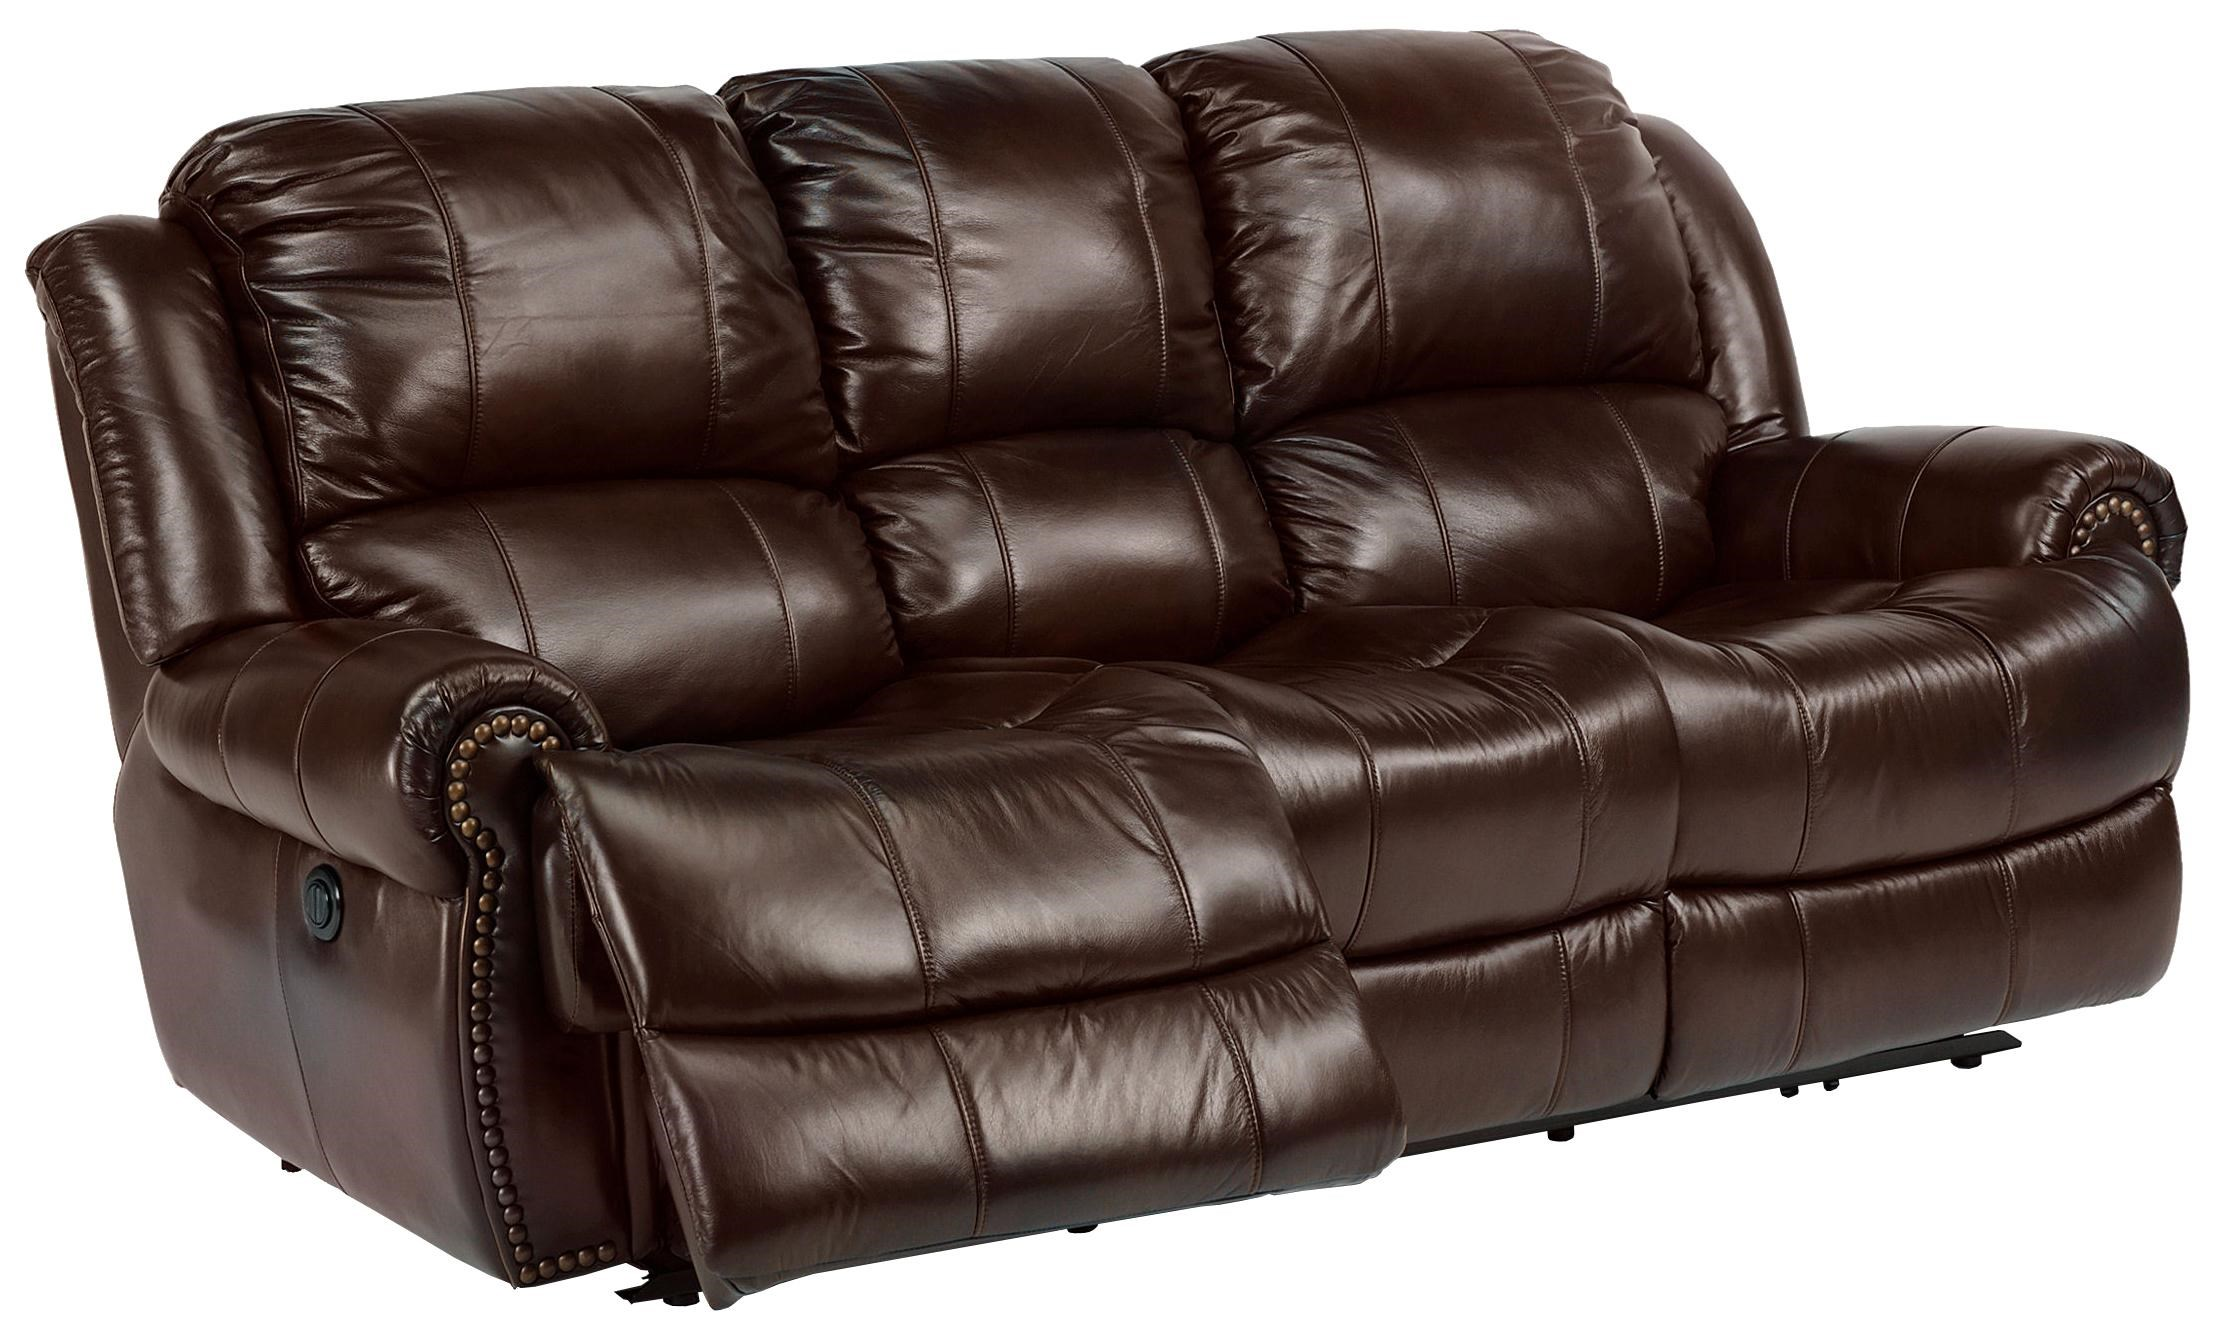 Flexsteel Latitudes Capitol Power Reclining Sofa with  : products2Fflexsteel2Fcolor2Fcapitol20 20 6603446461311 62p bjpgscalebothampwidth500ampheight500ampfsharpen25ampdown from www.wayside-furniture.com size 500 x 500 jpeg 34kB